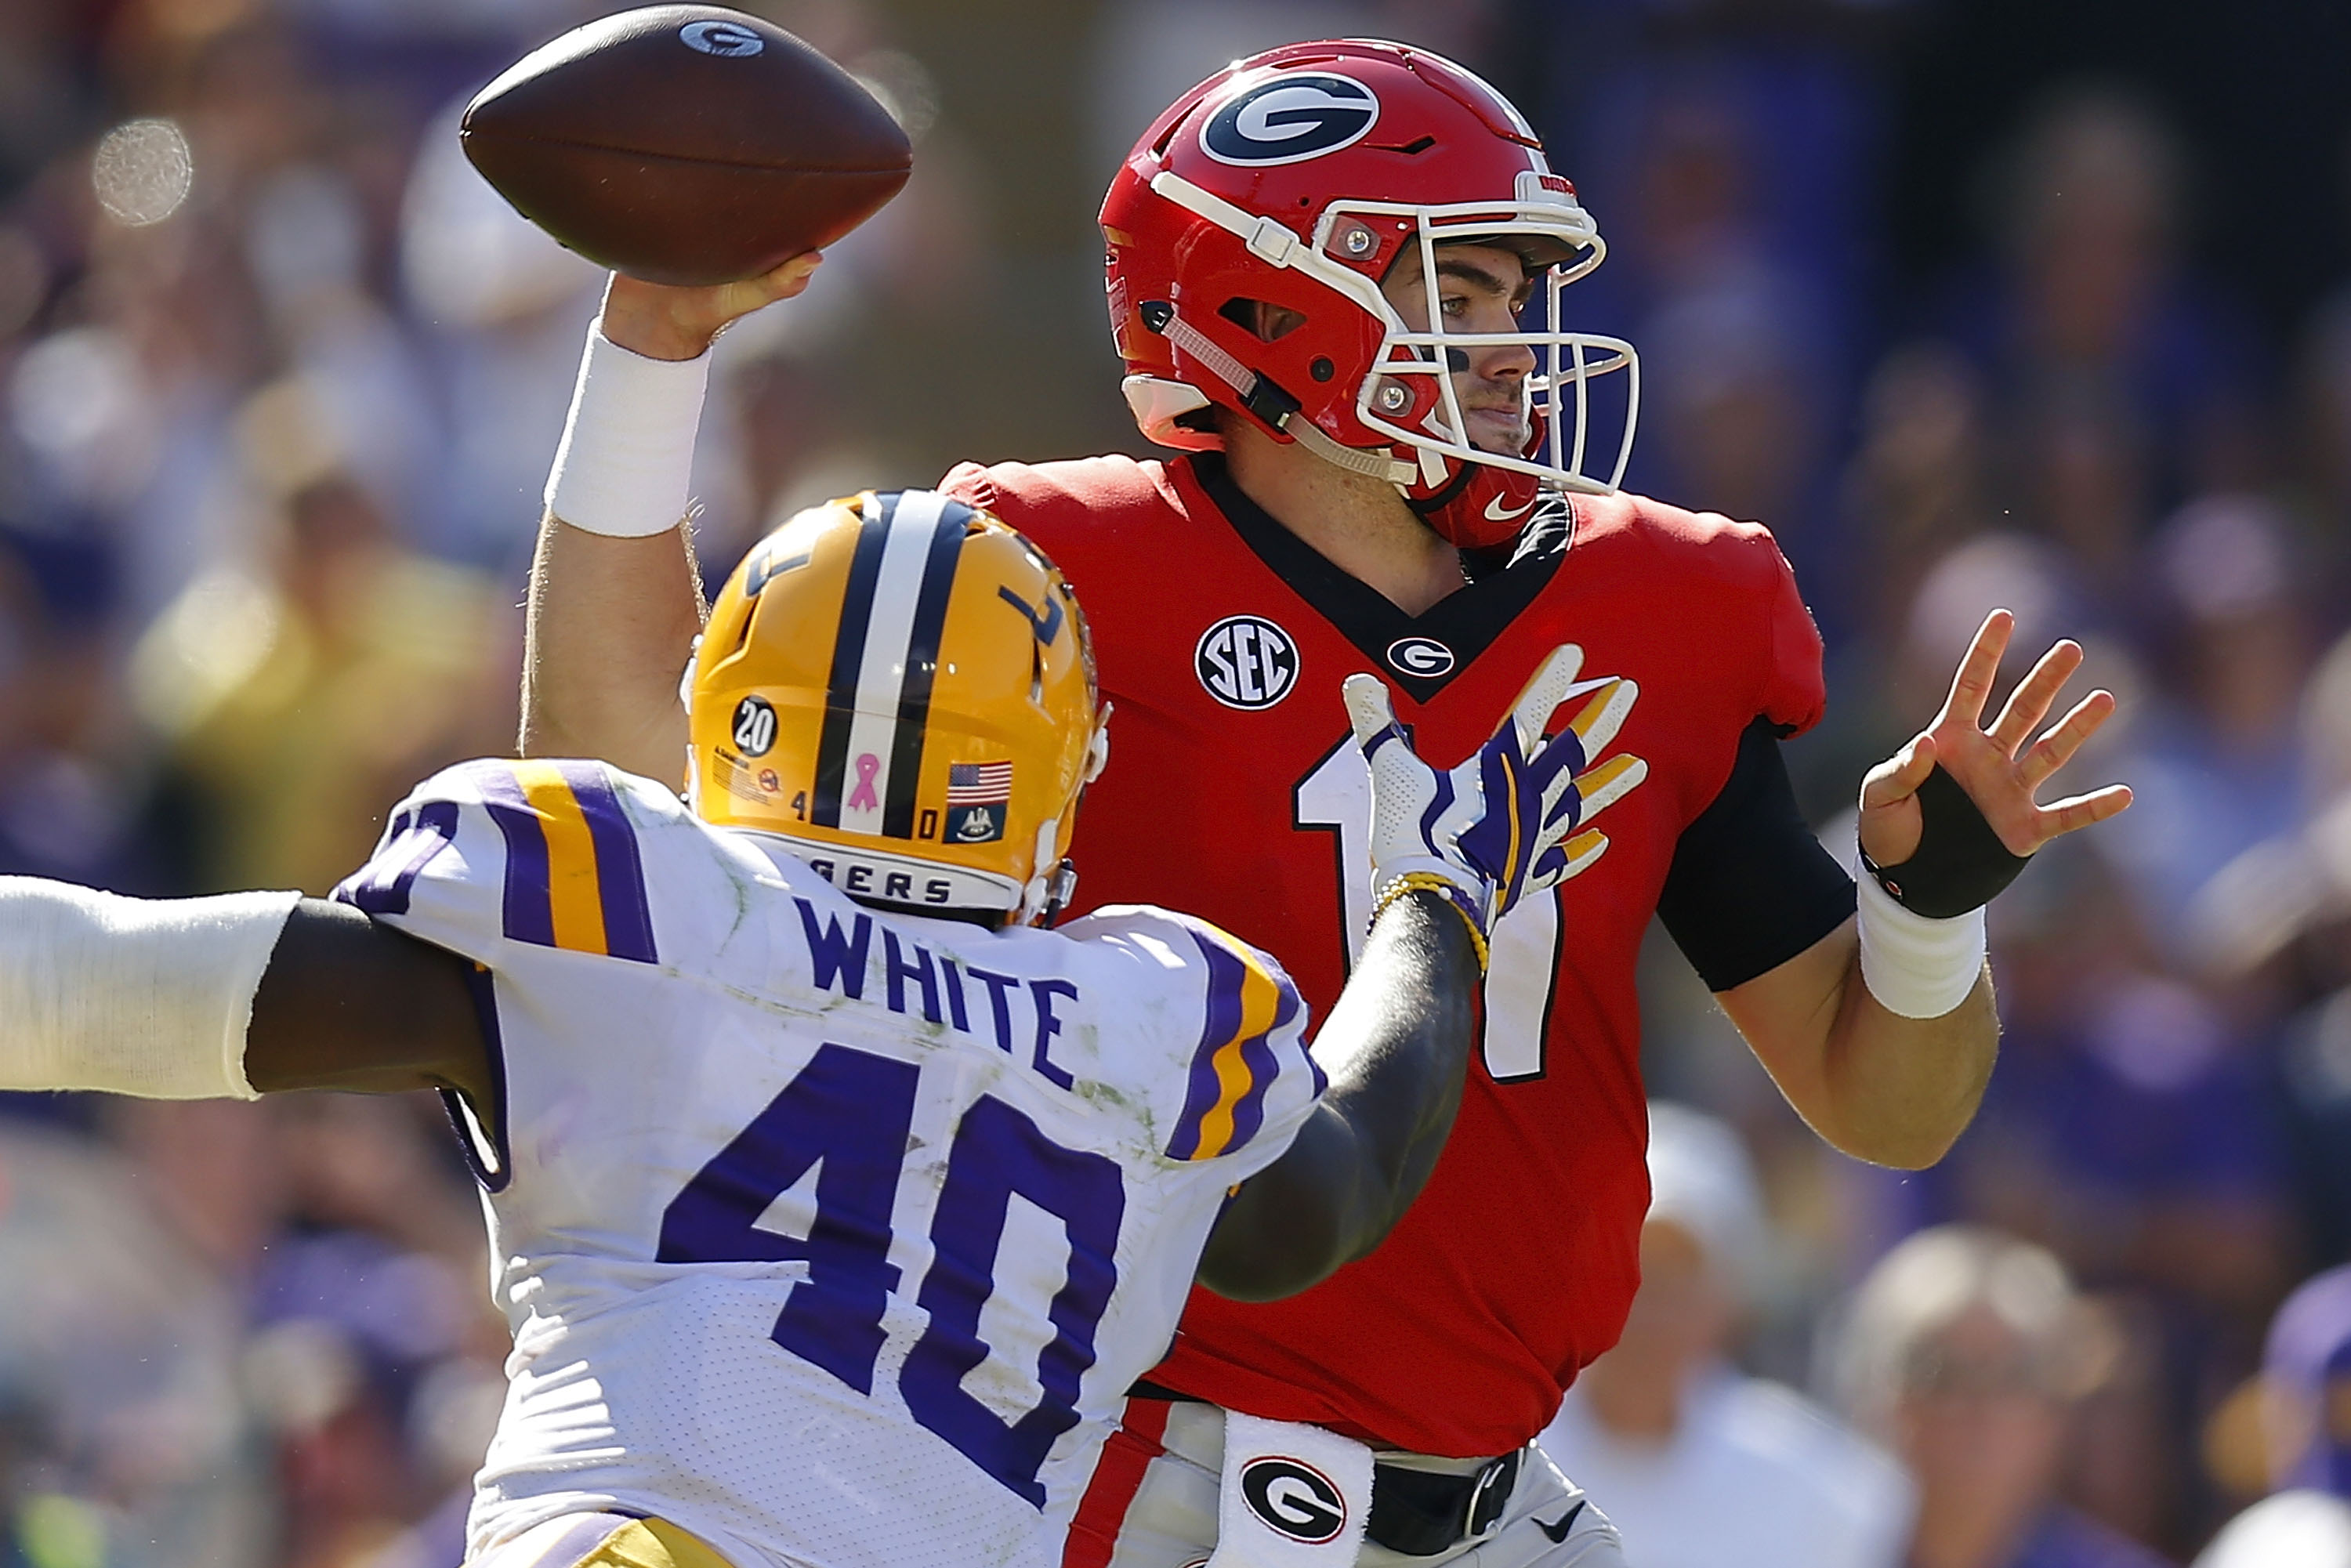 BATON ROUGE, LA - OCTOBER 13: Jake Fromm #11 of the Georgia Bulldogs throws the ball as Devin White #40 of the LSU Tigers defends during the first half at Tiger Stadium on October 13, 2018 in Baton Rouge, Louisiana. (Photo by Jonathan Bachman/Getty Images) Getty Images